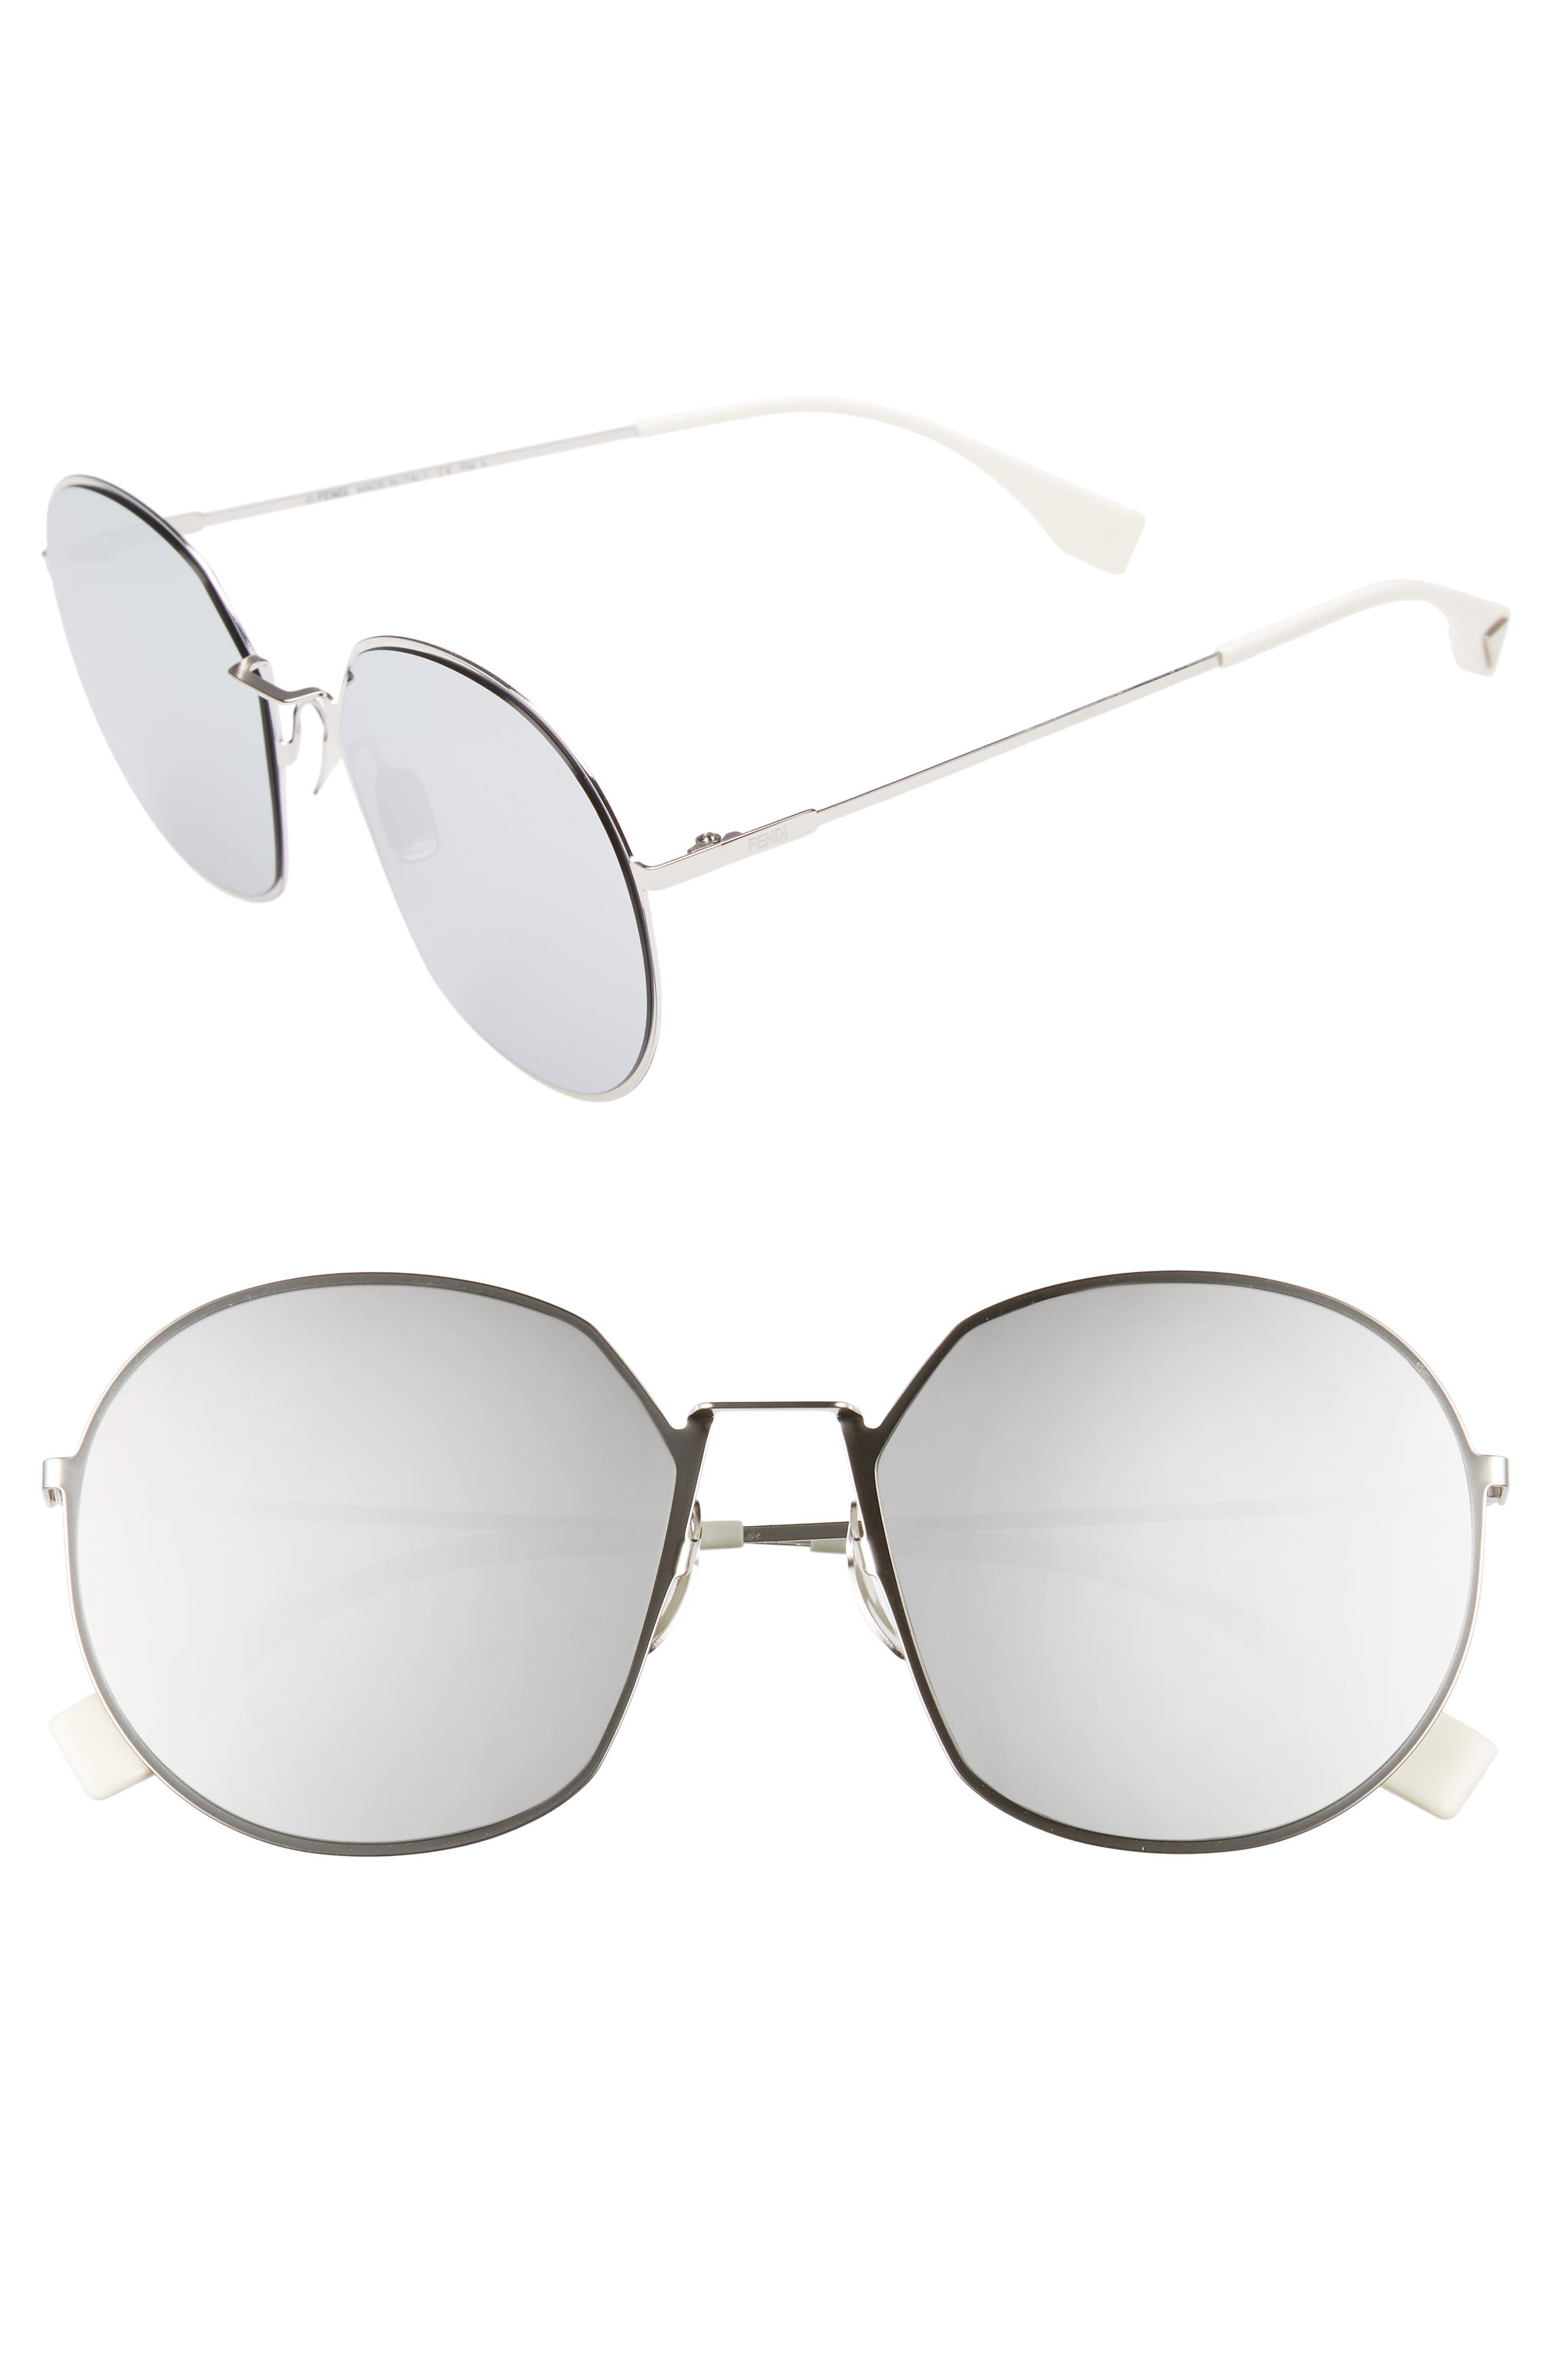 59mm Round Special Fit Sunglasses,                             Main thumbnail 2, color,